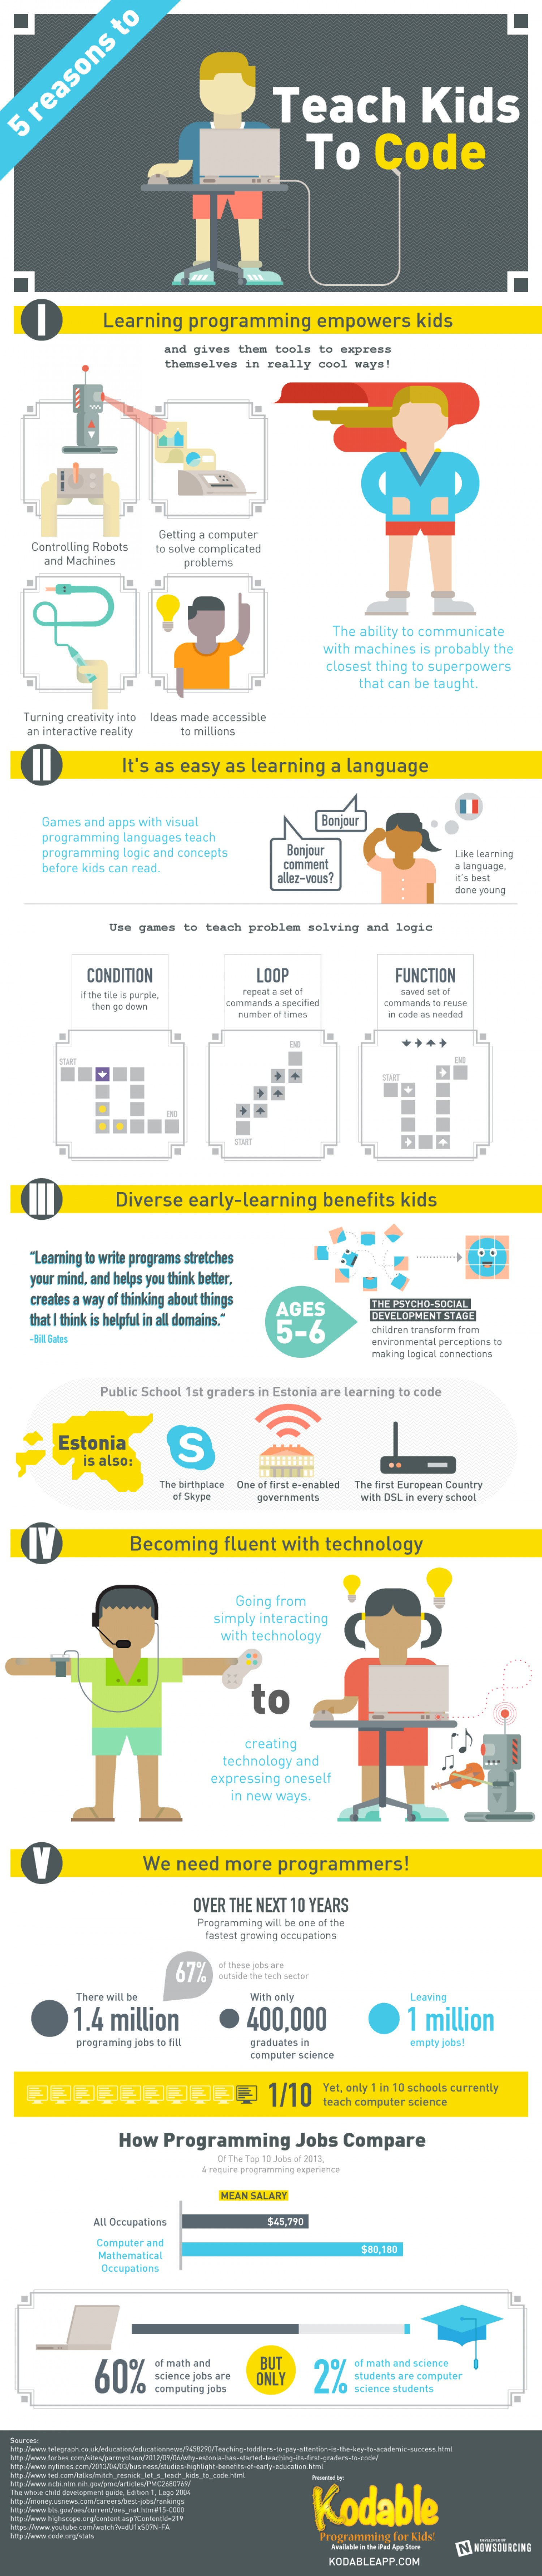 12 5-reasons-to-teach-kids-to-code_525c170a49149_w1500